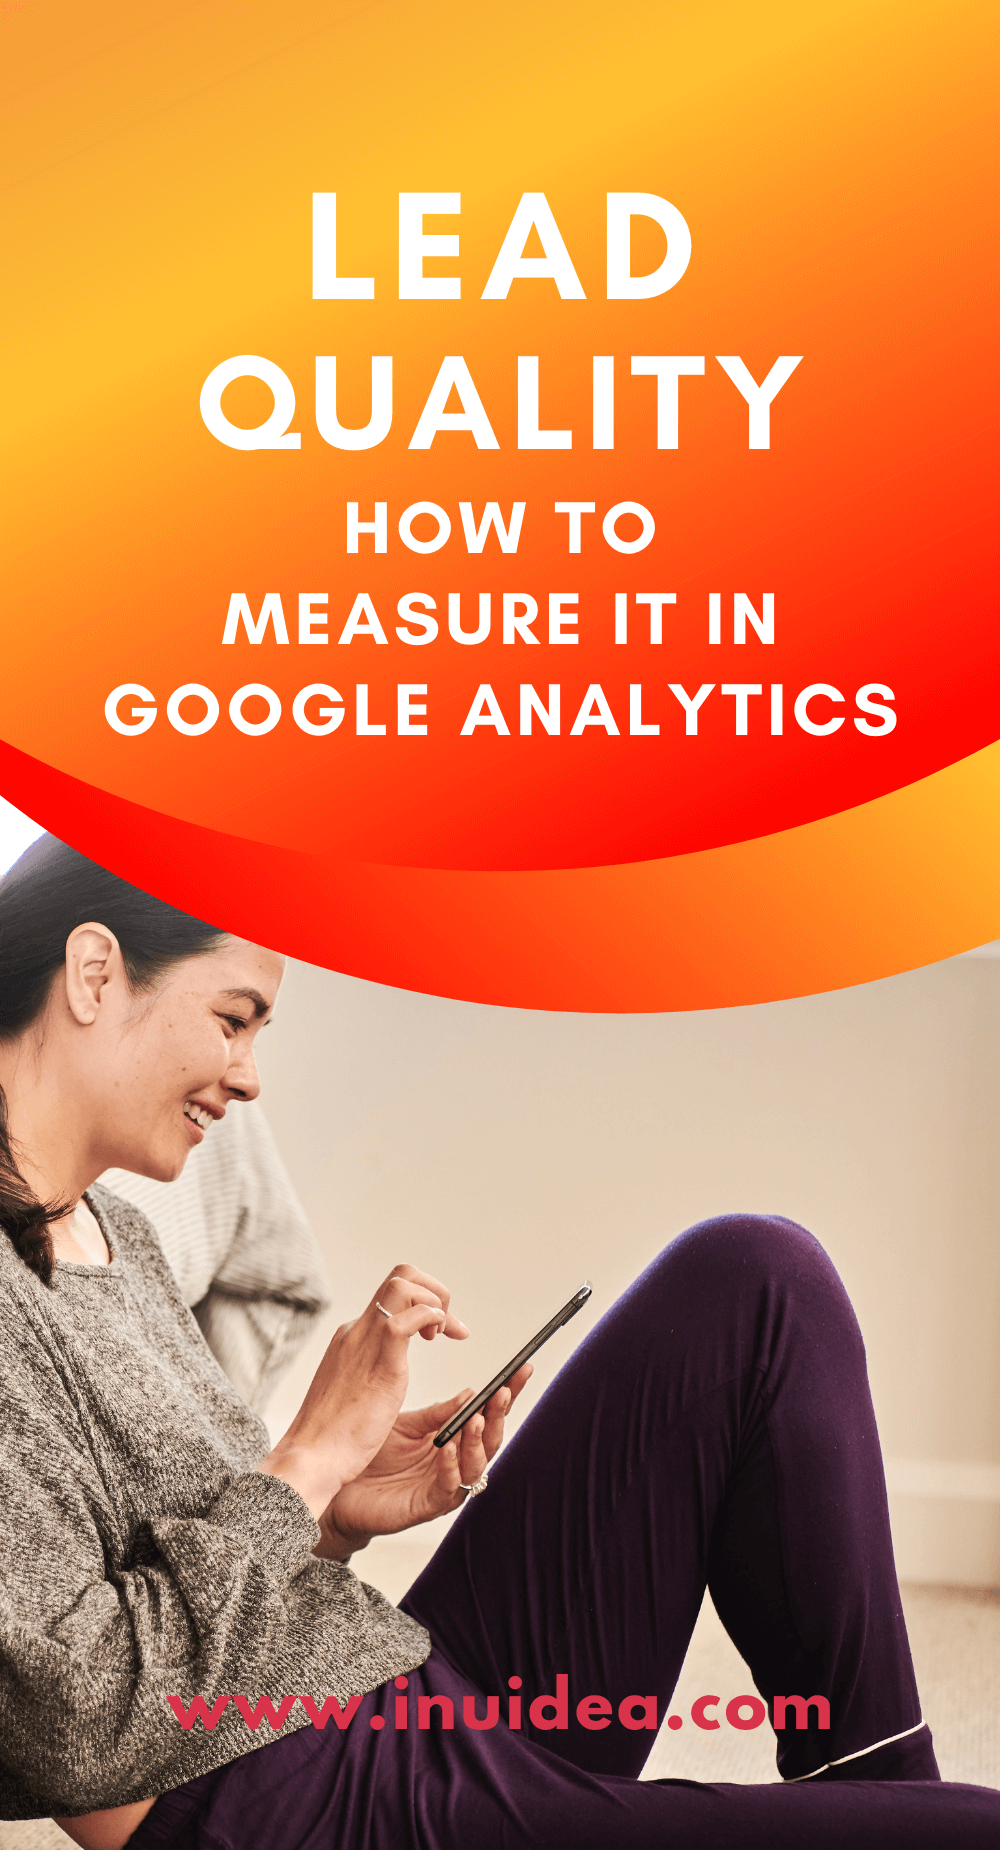 What is Lead Quality And How To Measure It in Google Analytics